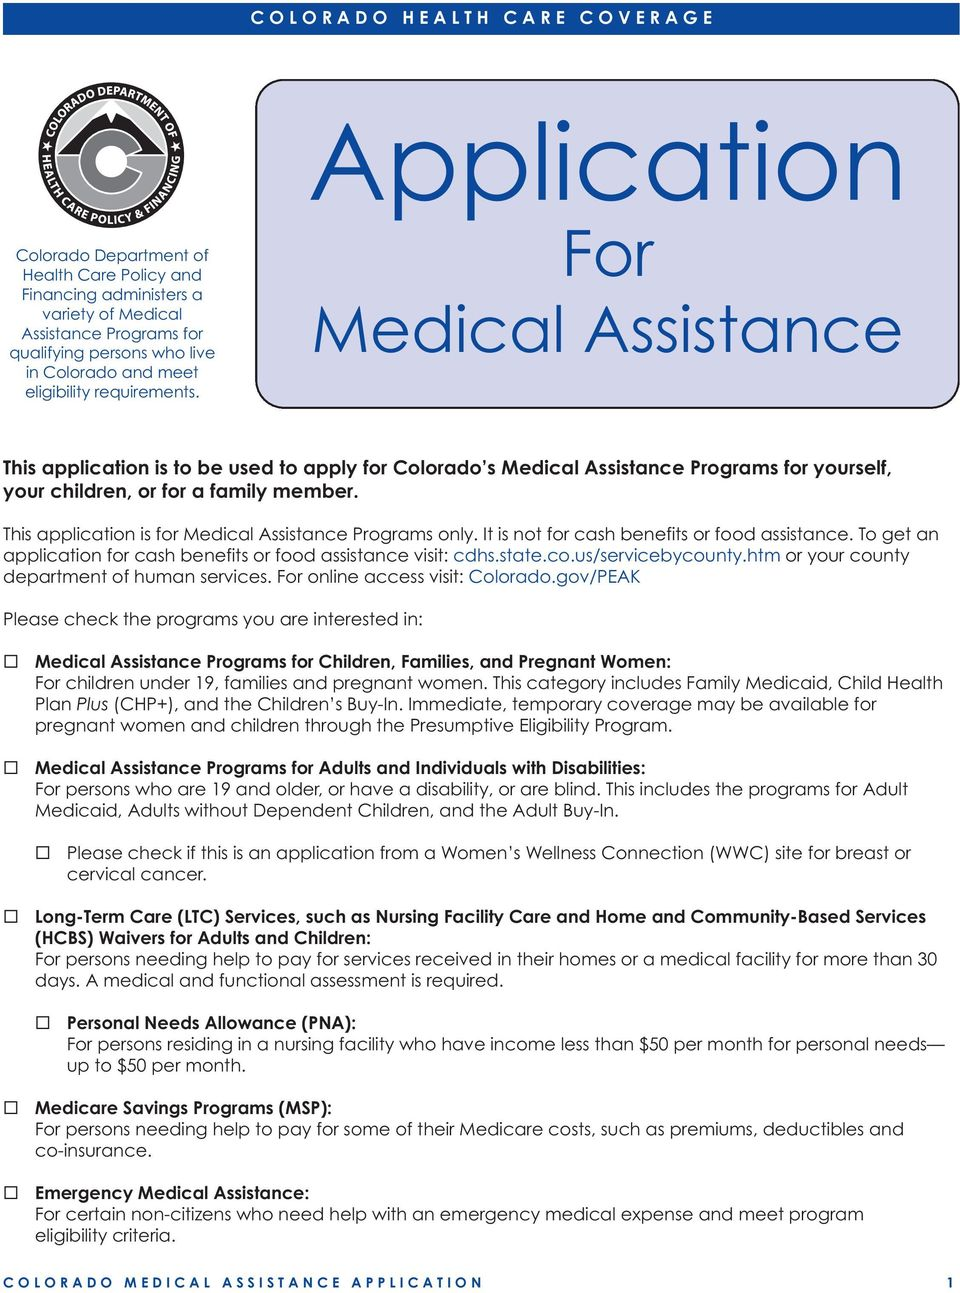 This application is for Medical Assistance Programs only. It is not for cash benefits or food assistance. To get an application for cash benefits or food assistance visit: cdhs.state.co.